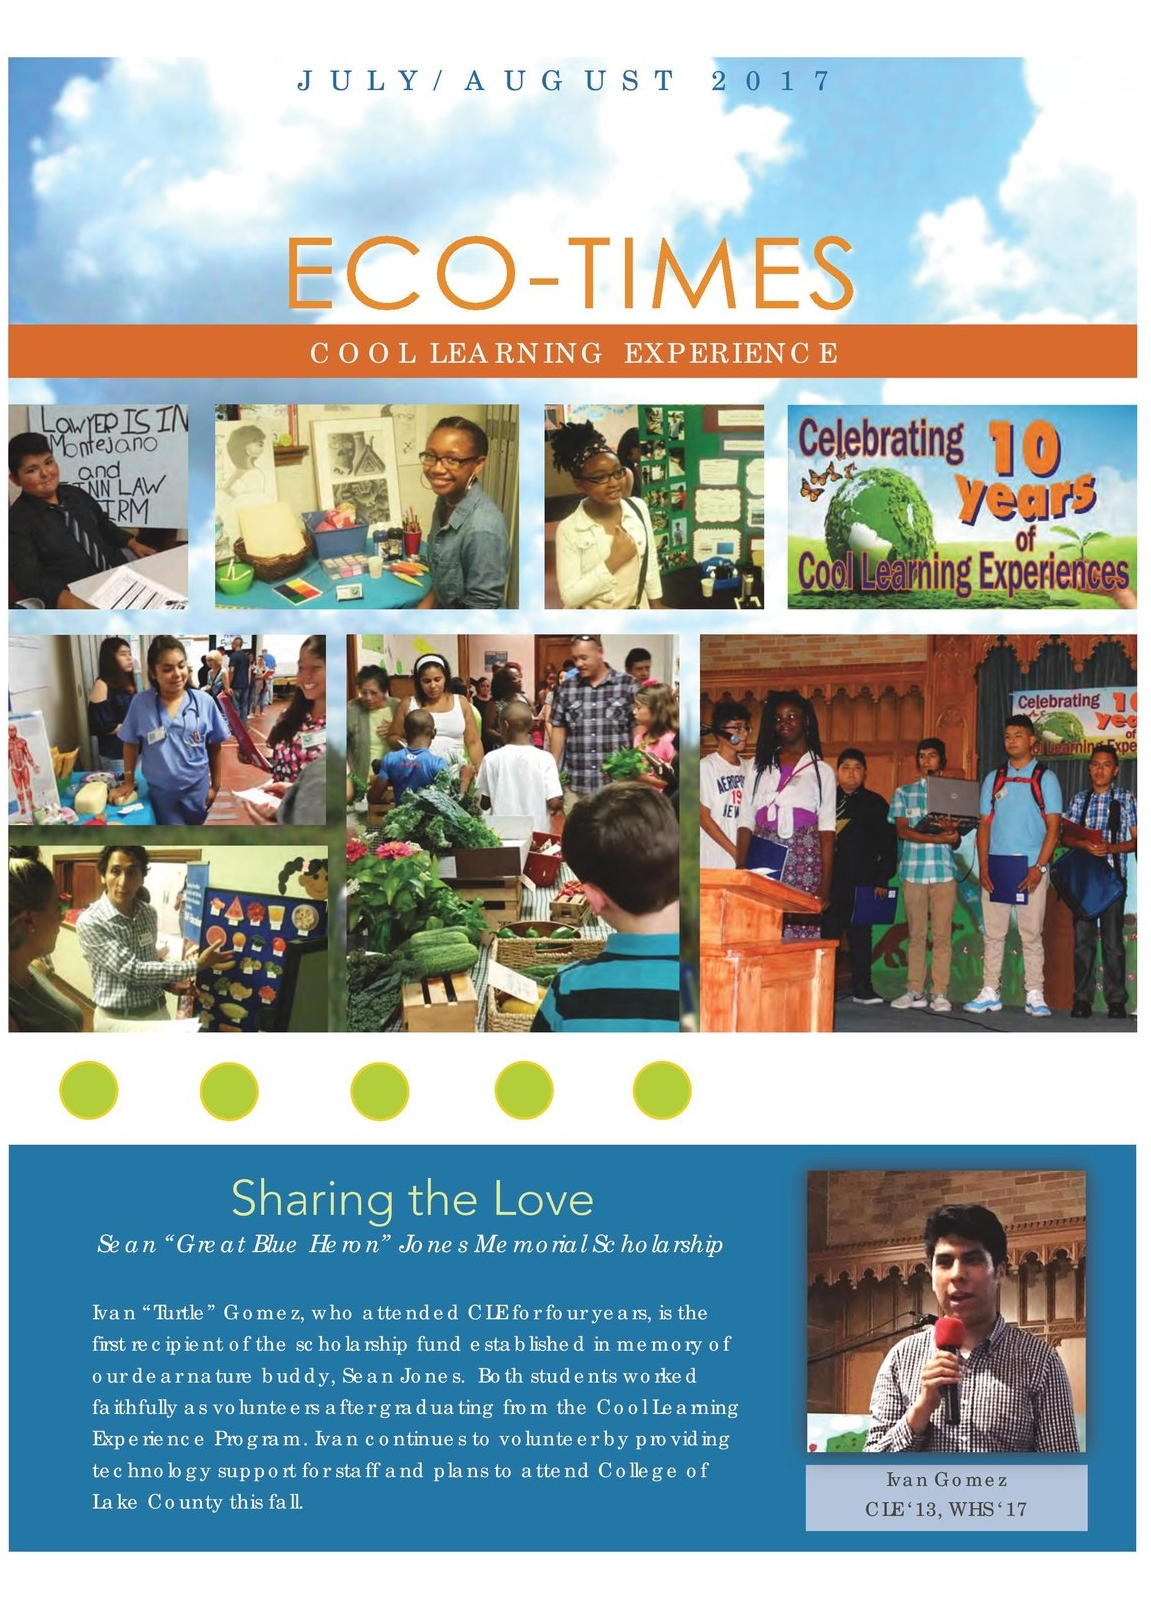 Ecotimes-Aug2017-4pages-WEB-page-001.jpg